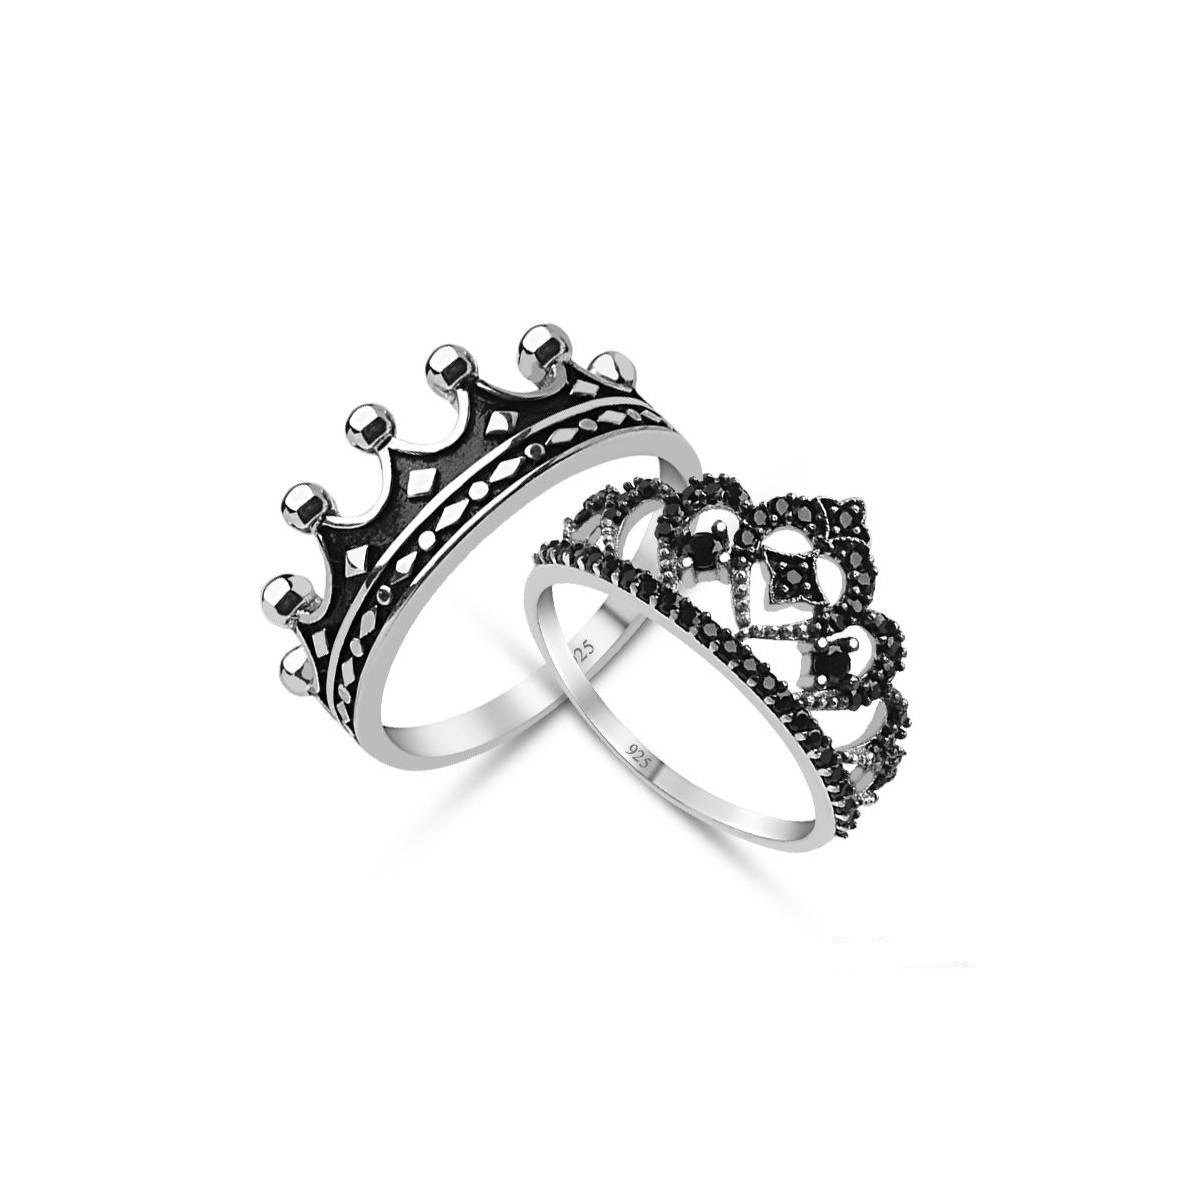 set wedding b the font queen shipping queens ring lady most expensive engagement rings coronet free